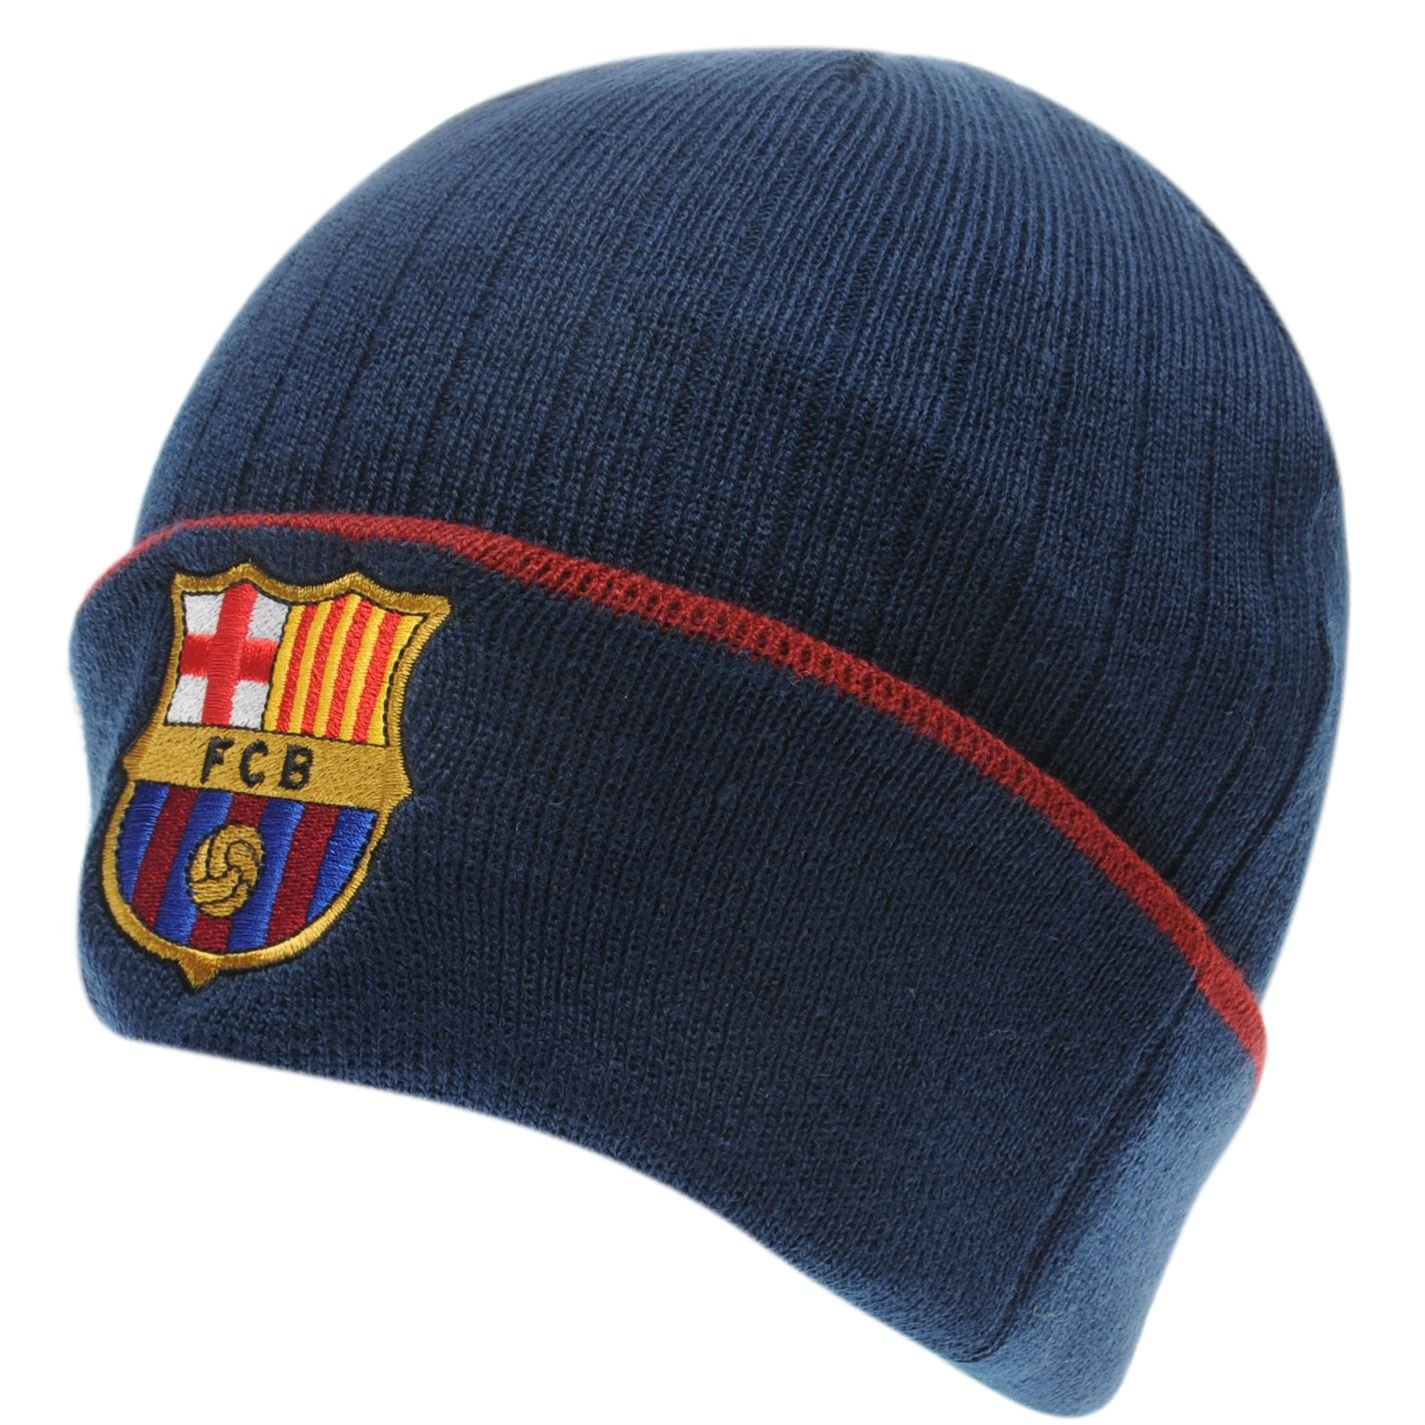 1609534f868 Team Mens Knit Beanie Hat Knitted Turned Up Cuff Crest Badge Mens  Barcelona  Amazon.co.uk  Clothing